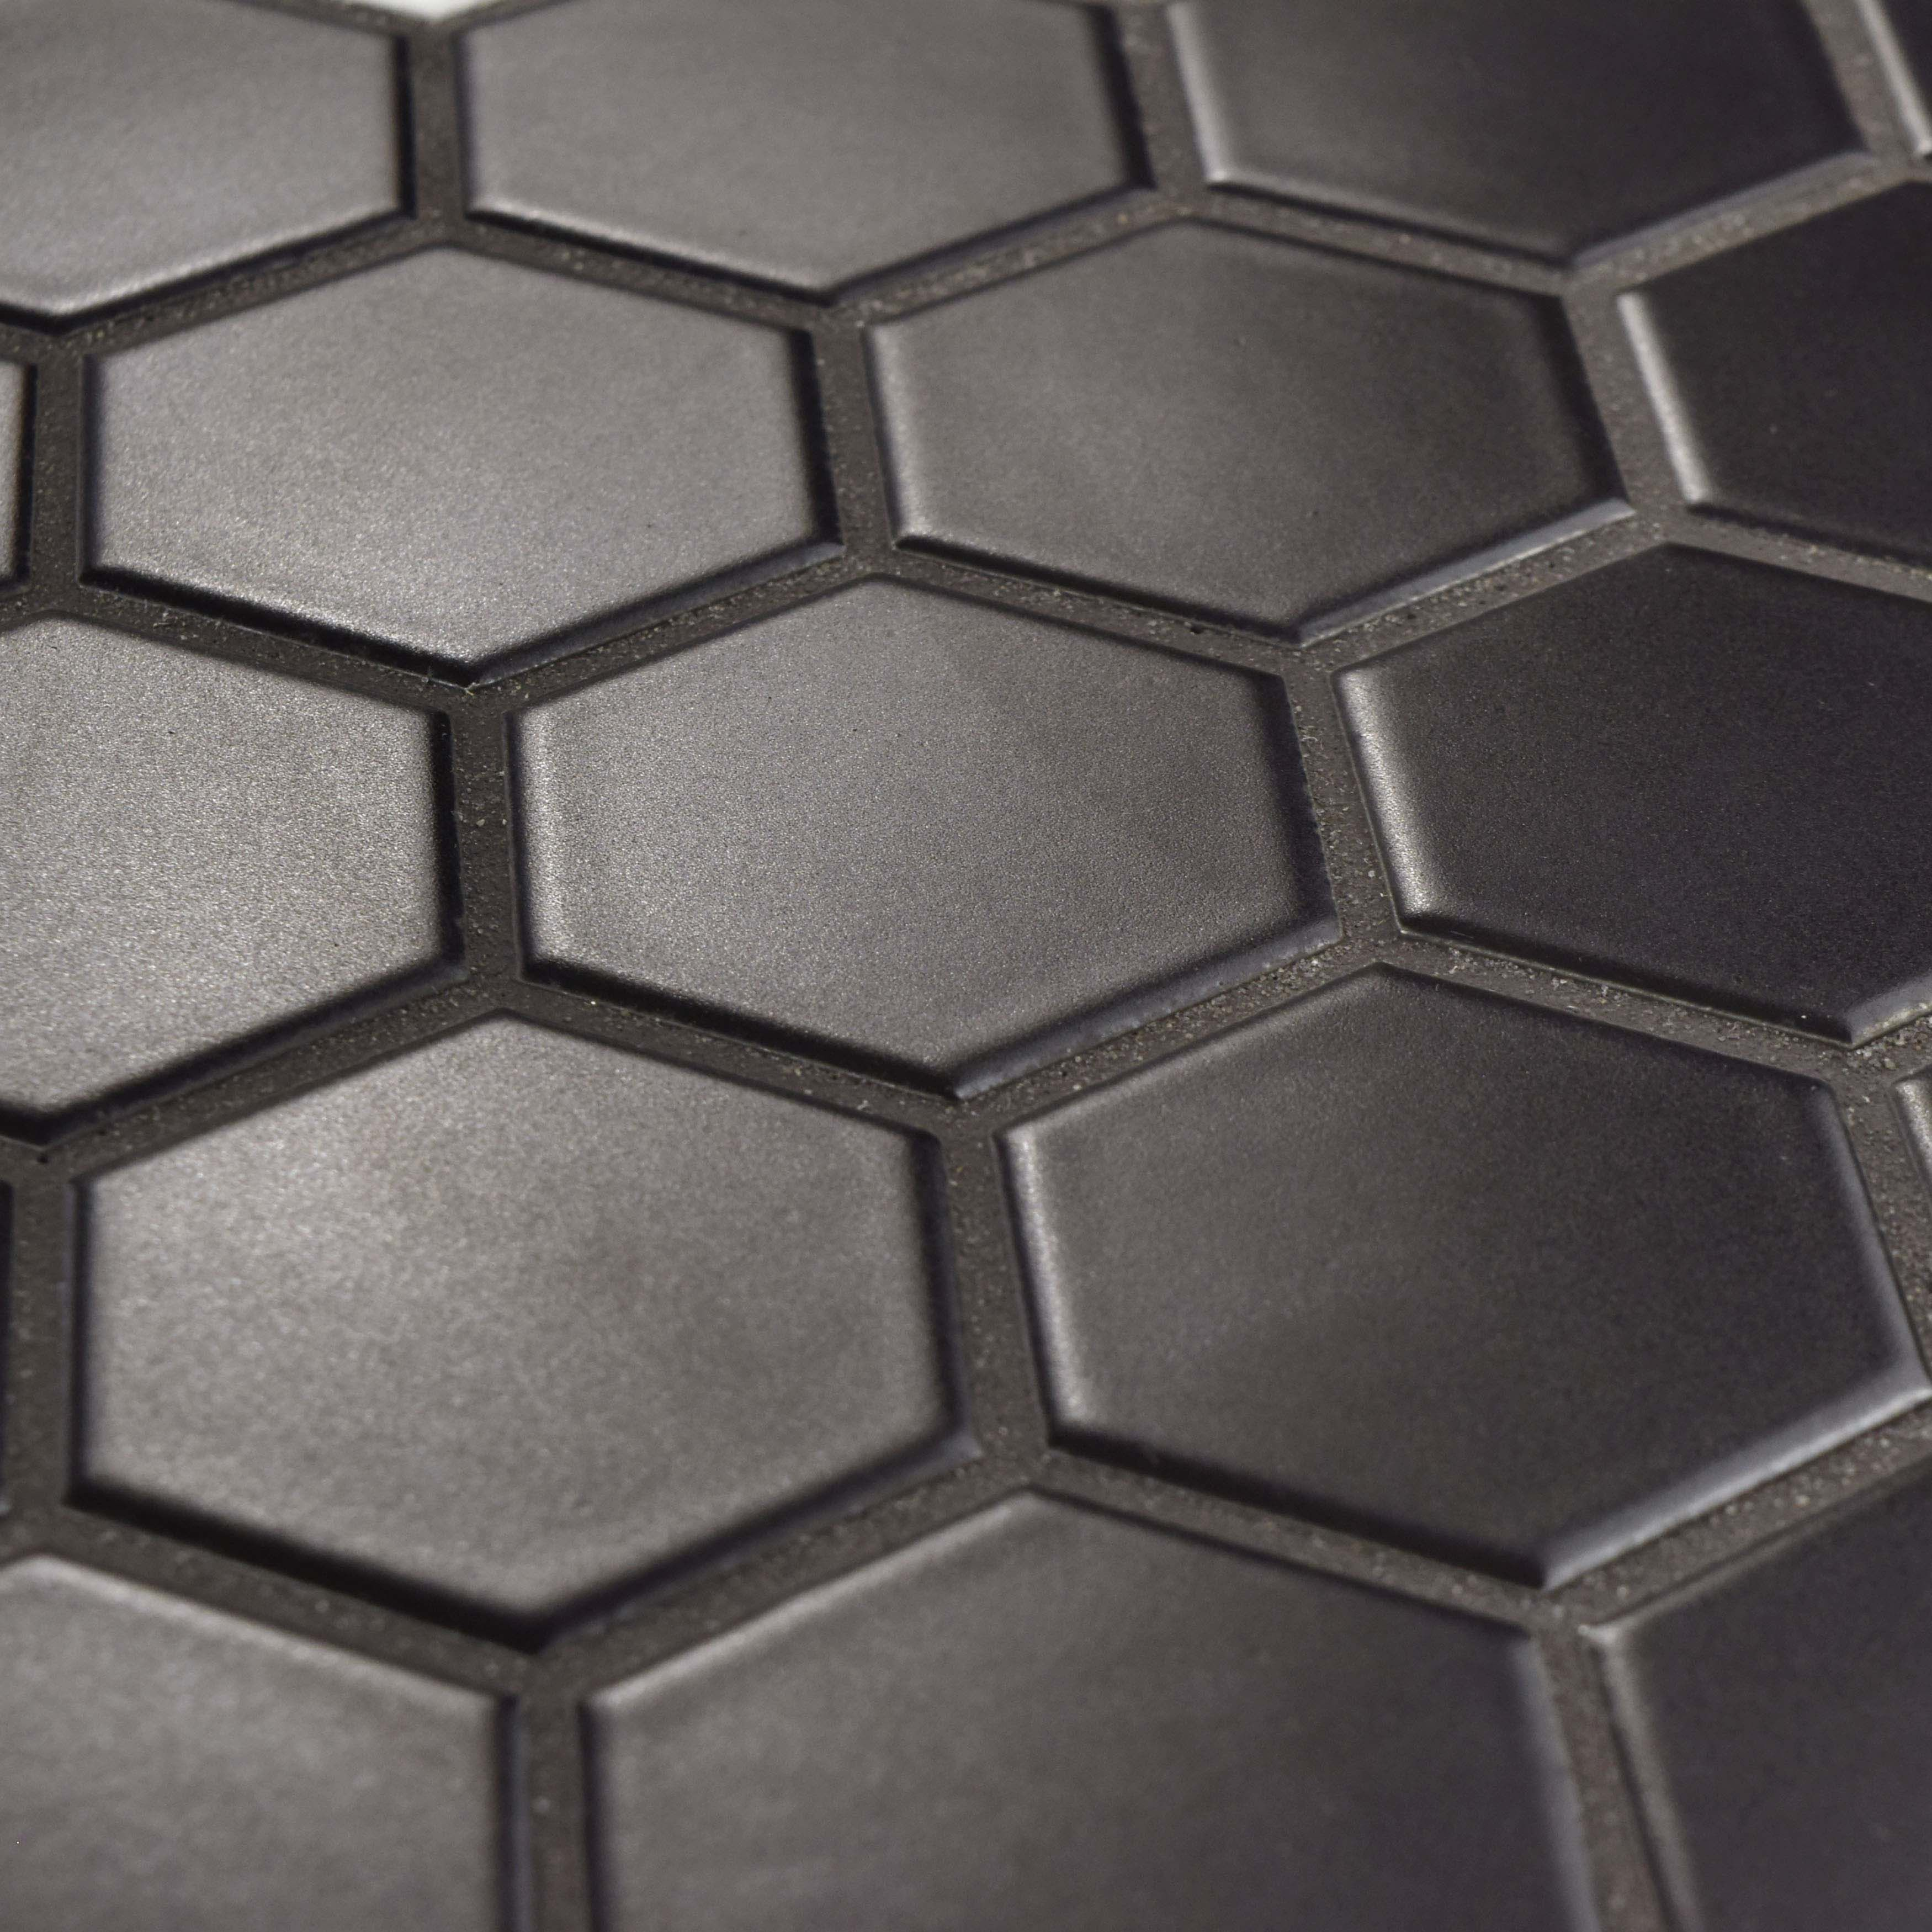 Elitetile Retro Hexagon 2 X 2 Porcelain Mosaic Tile In Matte